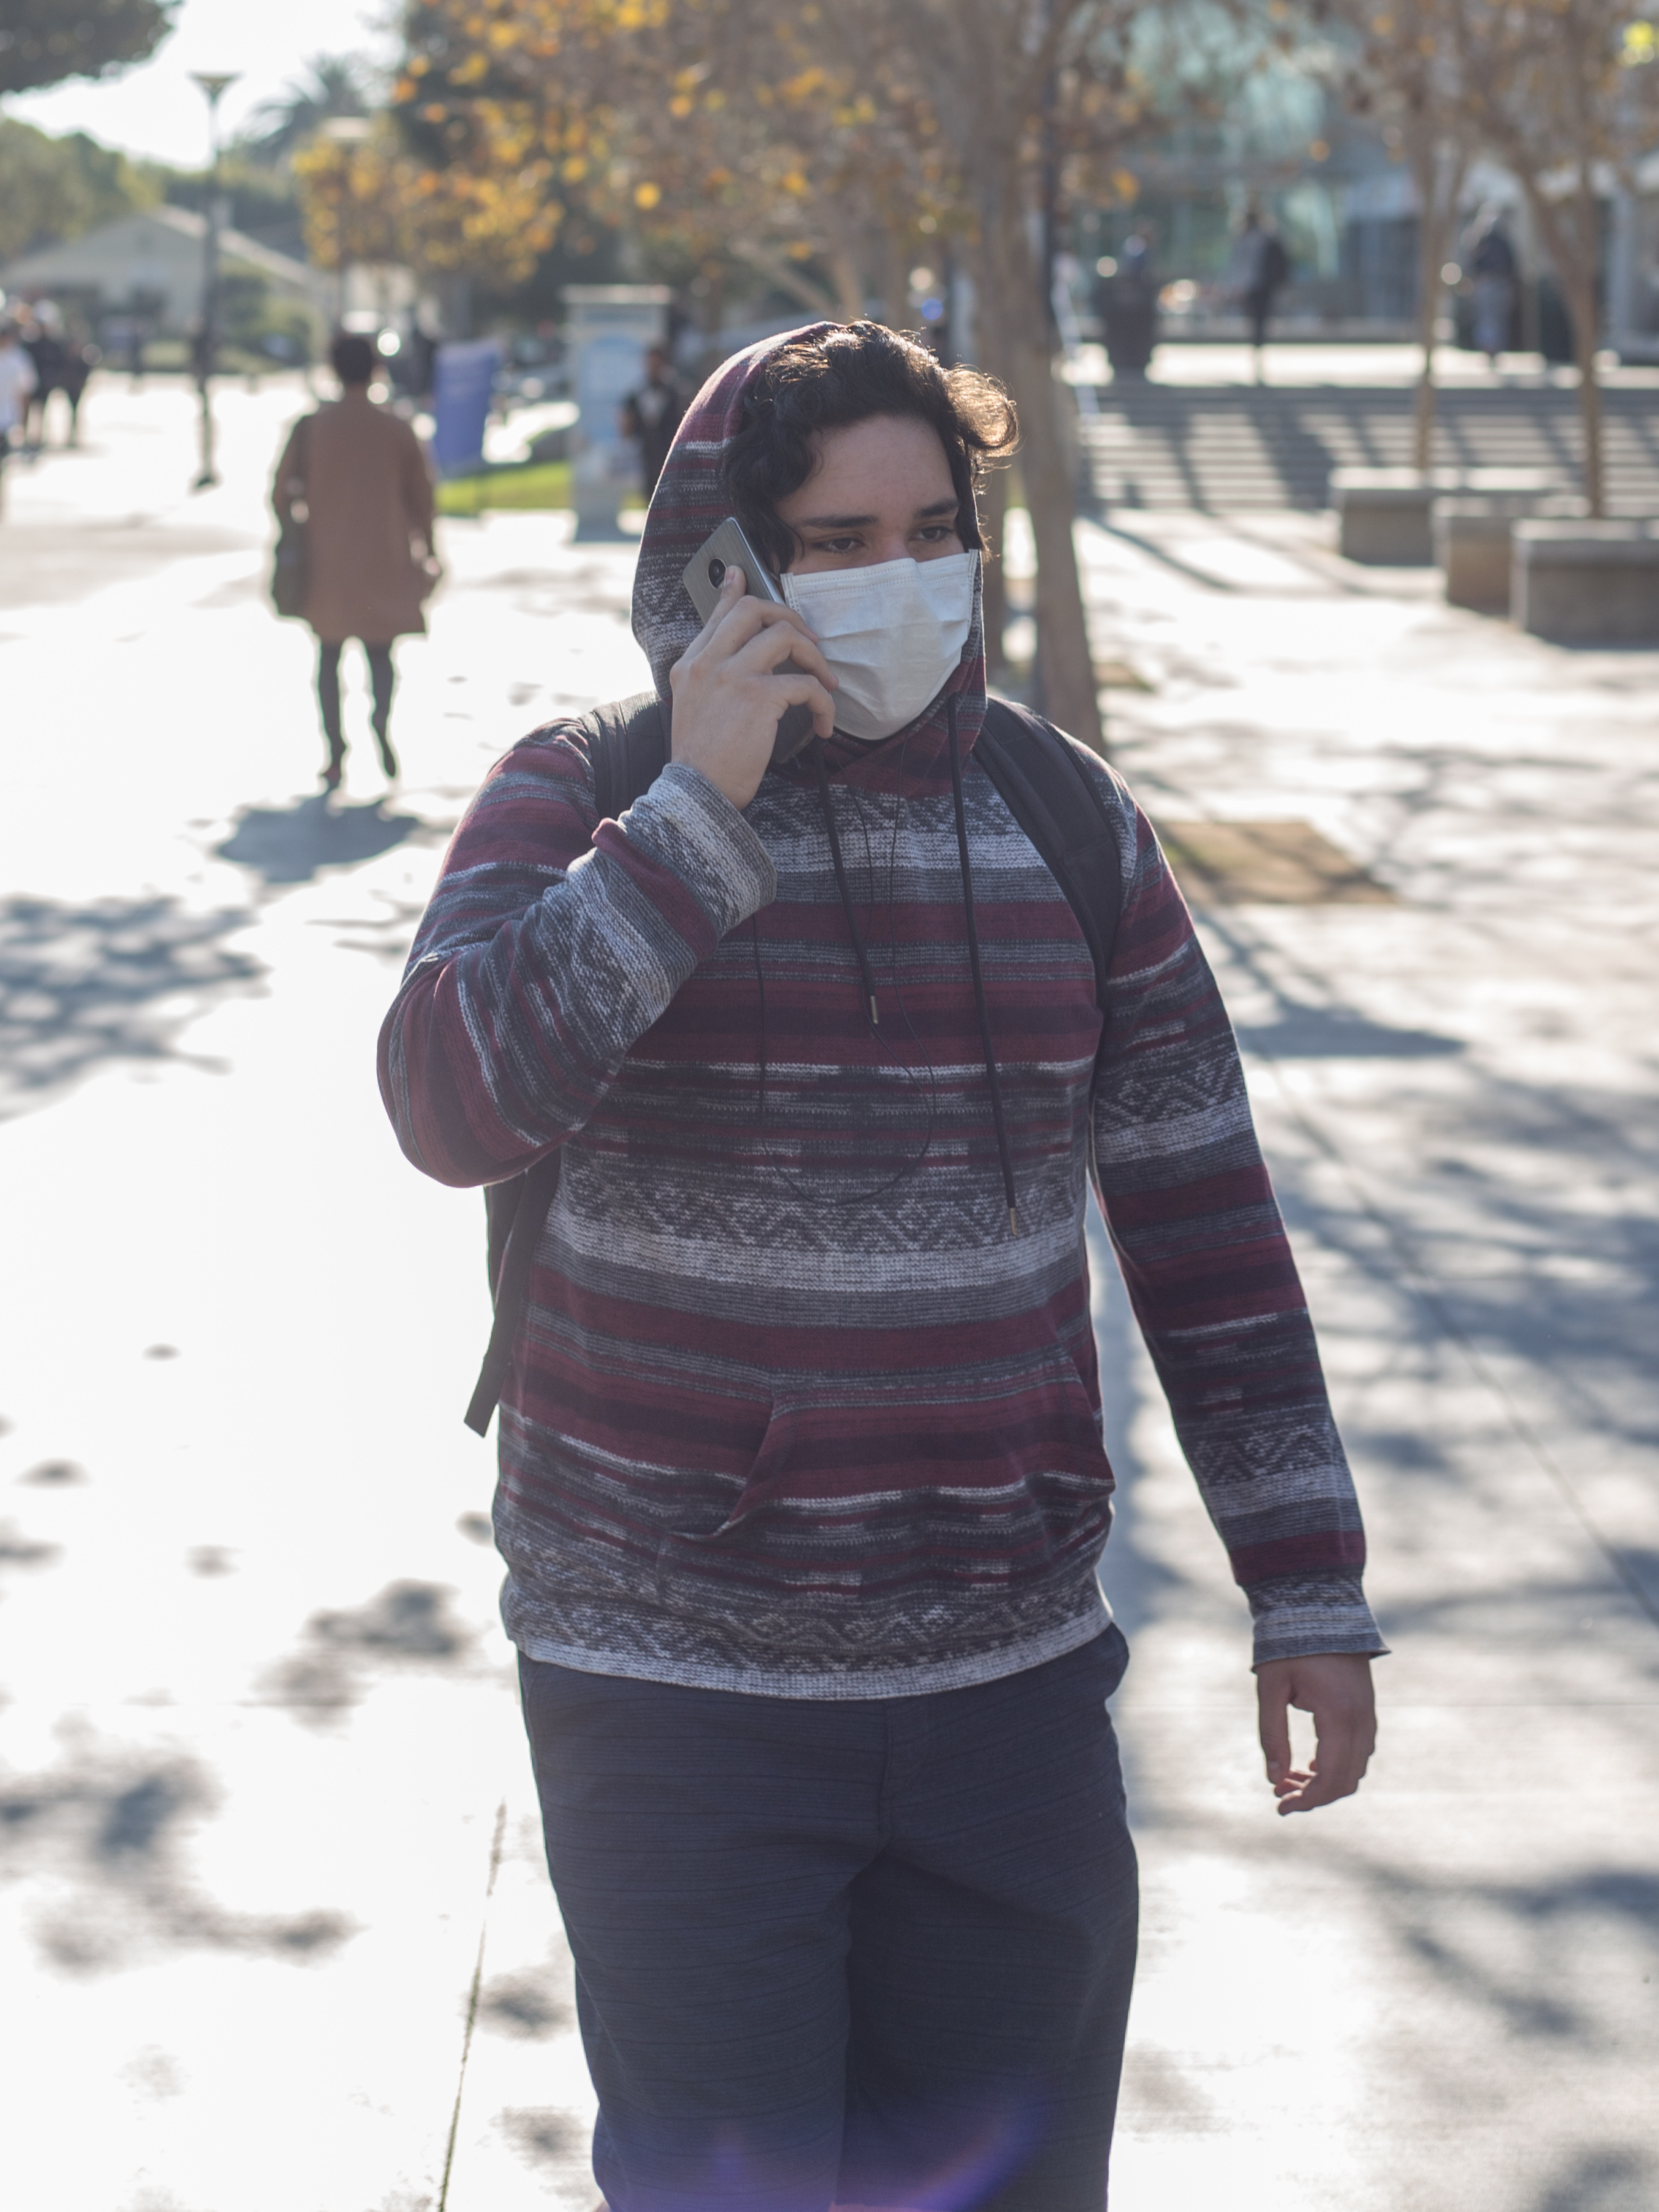 """SMC Student walks on campus with a mask over his mouth and nose due to the poor air quality as a result from the Skirball fire after an email was sent out at 8:49 am by SMC informing students that classes are canceled due to the close proximity to the Skirball fire on Wednesday, December 6th 2017 in Santa Monica, Calif. The email stated that the """"fire is affecting the air quality and the road conditions in and around SMC area"""". (Photo by: Thane Fernandes)"""